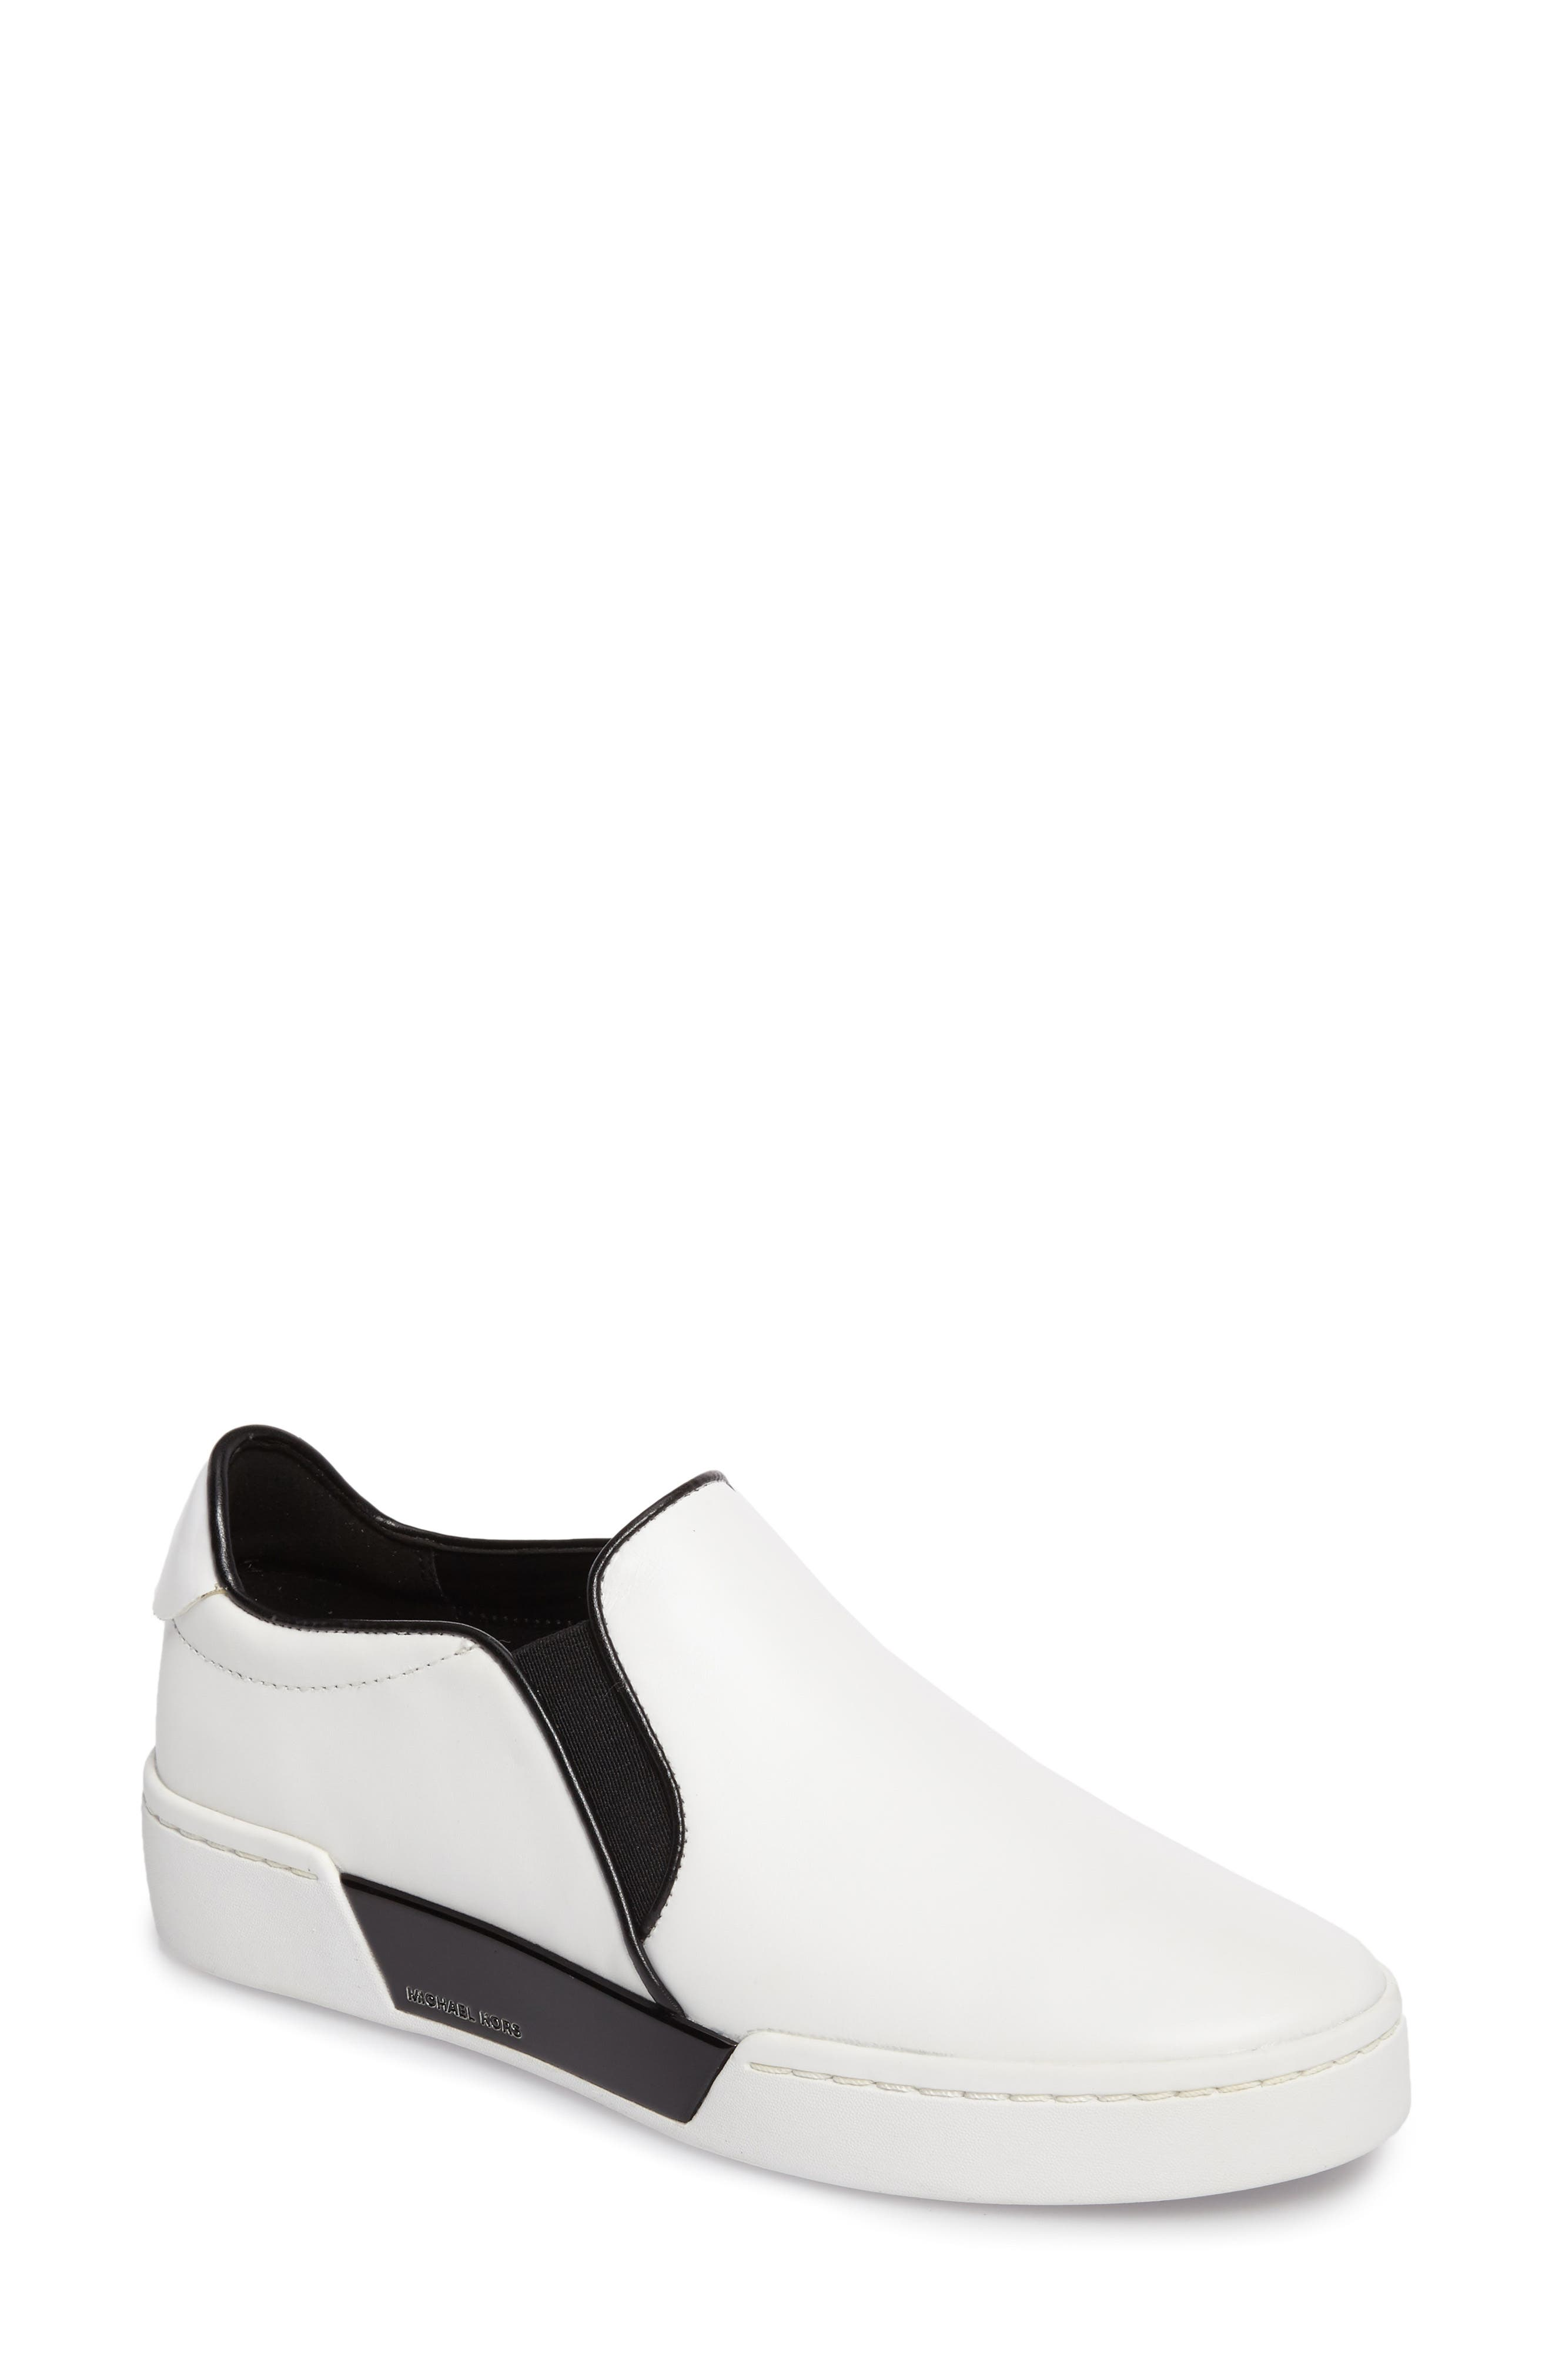 Brenden Slip-On,                             Main thumbnail 1, color,                             Optic White